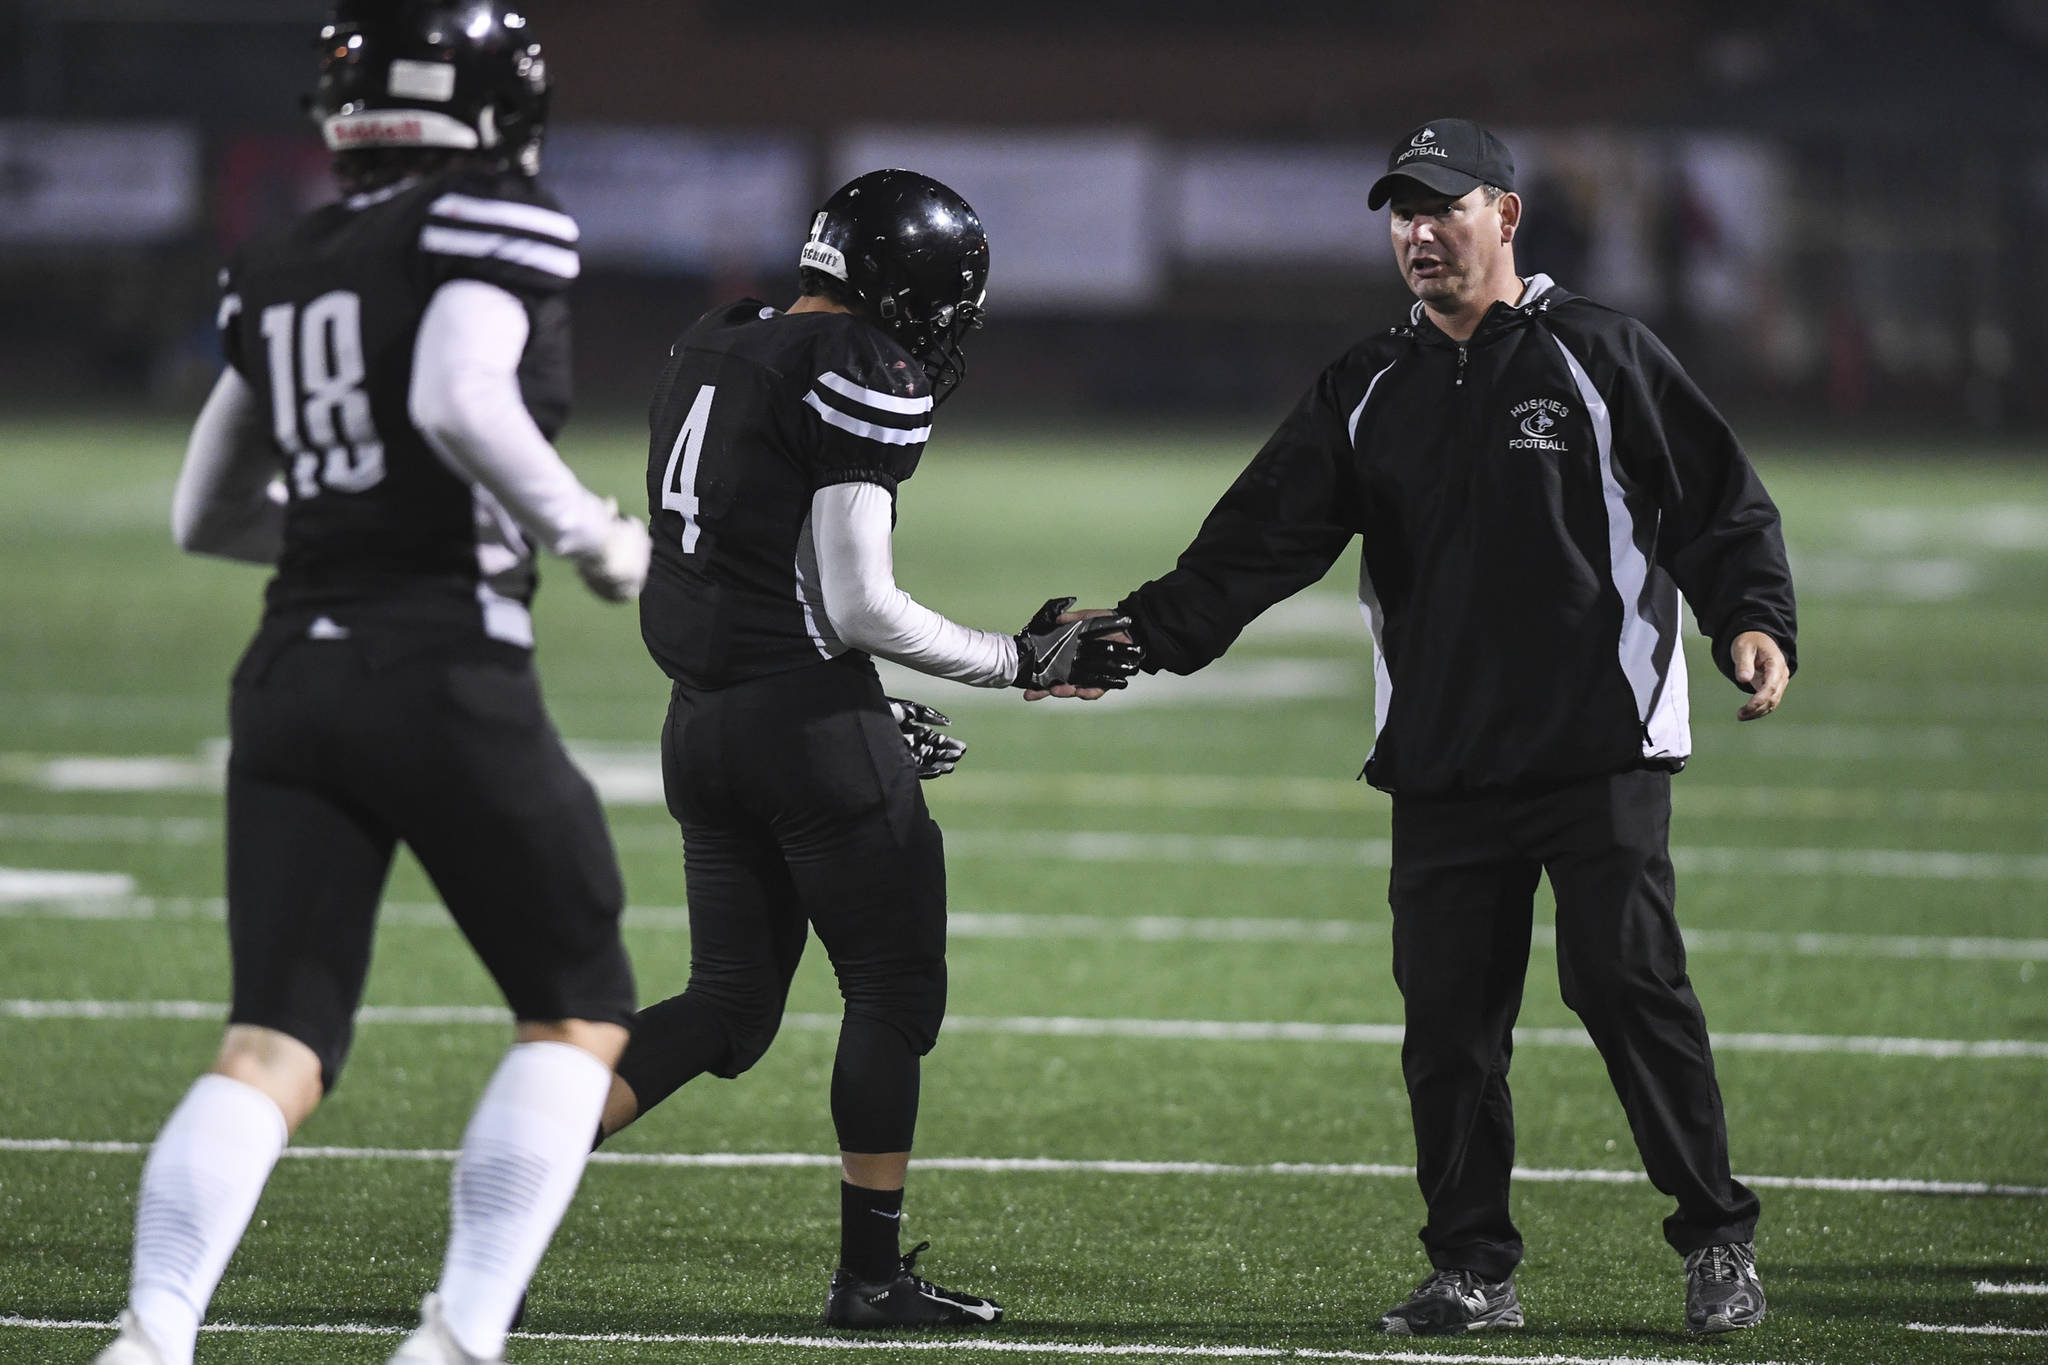 Juneau's head coach Rich Sjoroos congratulates Ali Beya, center, and Cooper Kriegmont in the third quarter as they compete against Wasilla at Adair-Kennedy Memorial Field on Friday, Sept. 6, 2019. Juneau won 63-0. (Michael Penn | Juneau Empire)